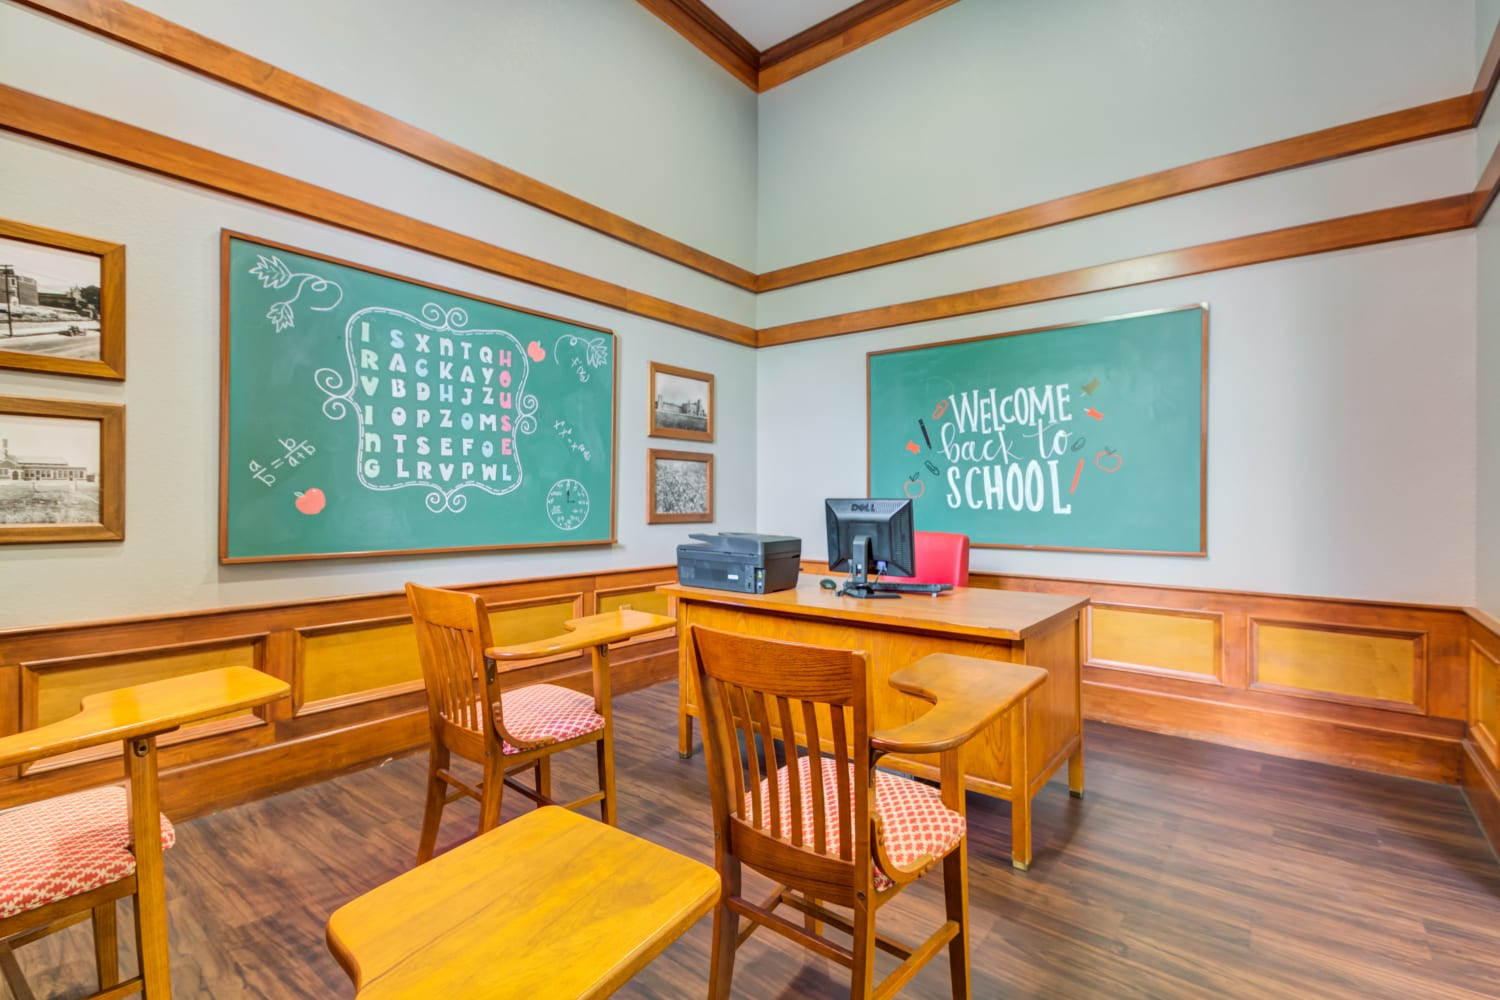 Old classroom interior at Irving Schoolhouse Apartments in Salt Lake City, Utah